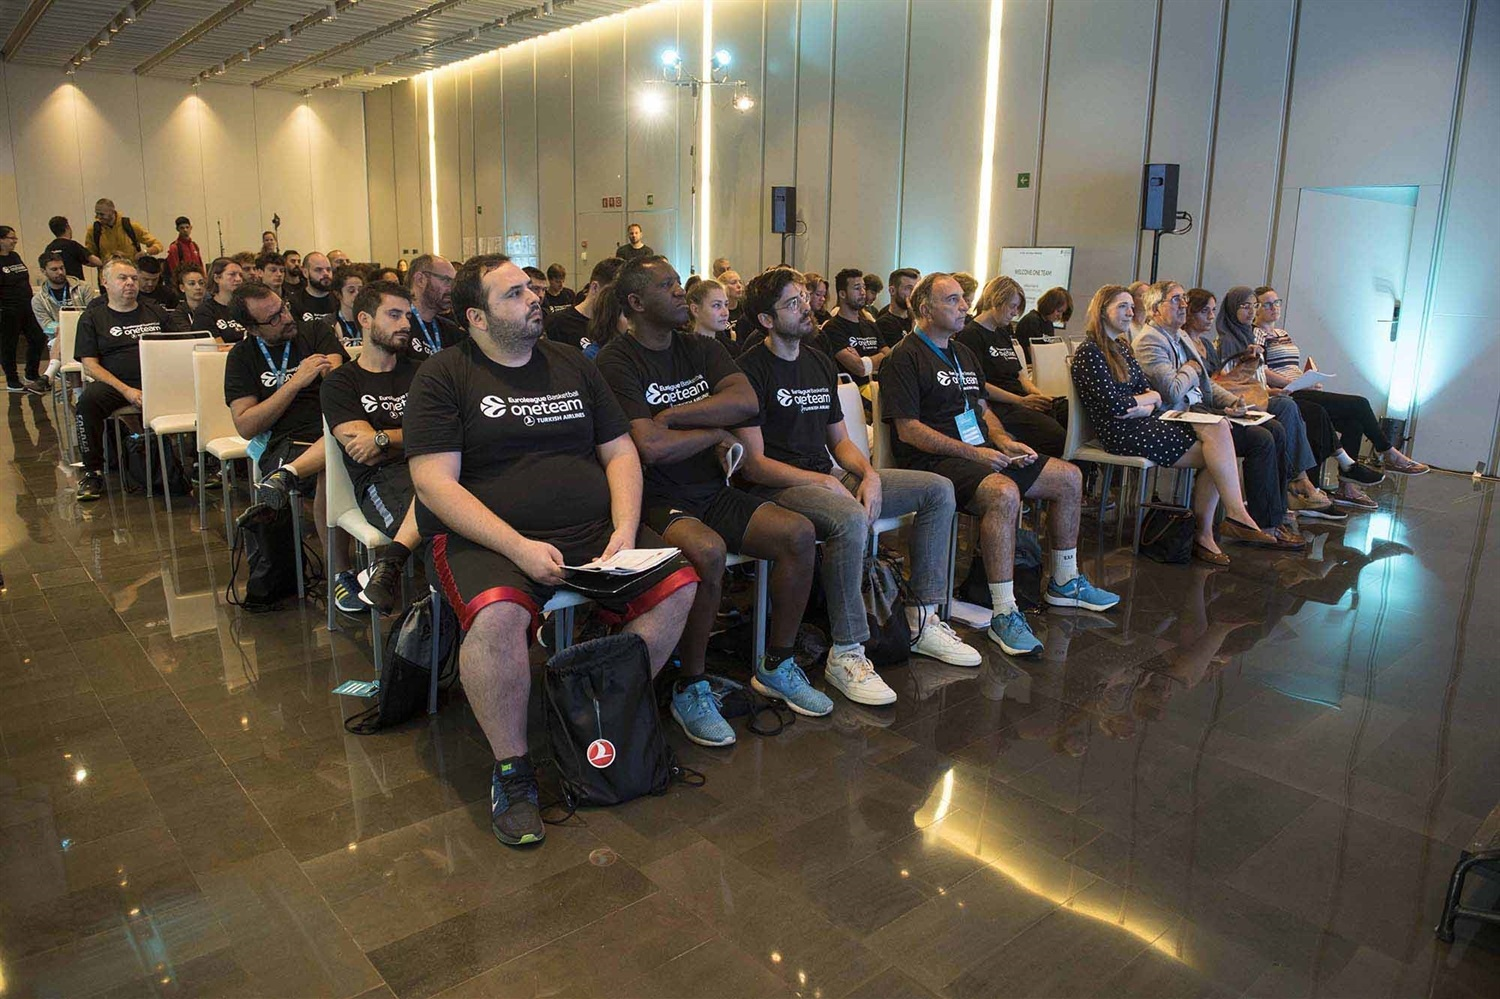 2019 One Team workshop and awards ceremony